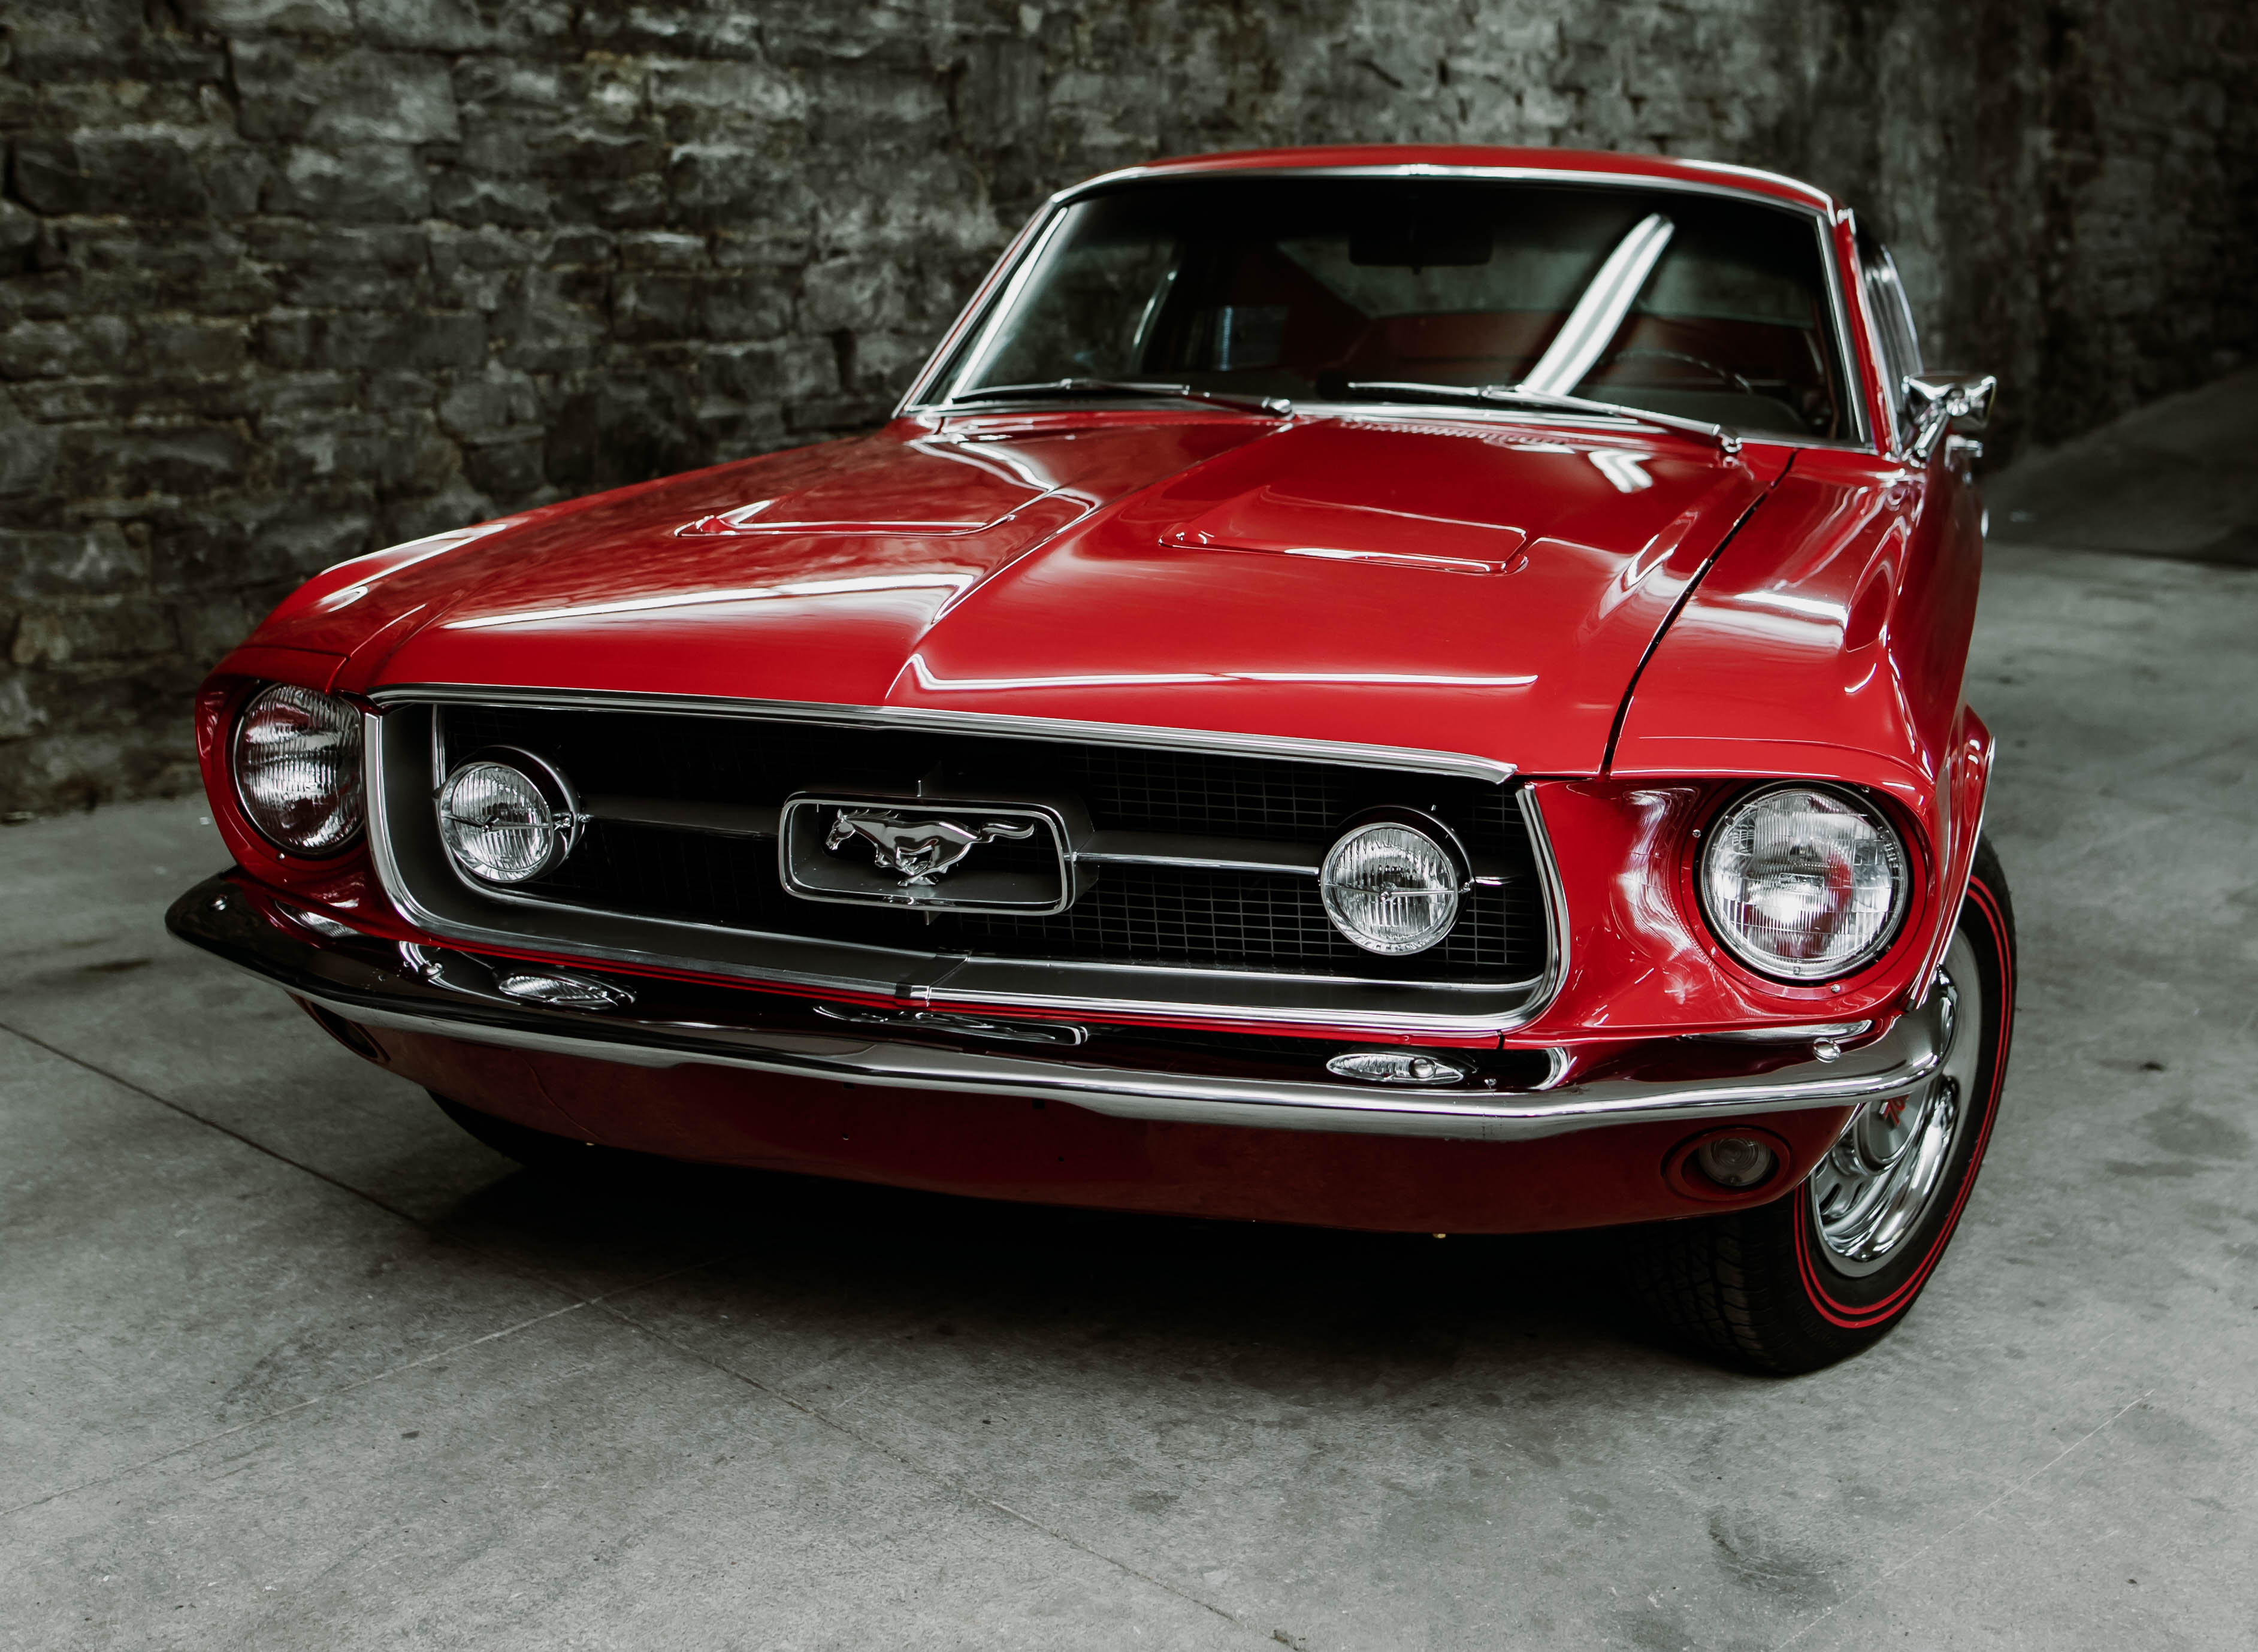 1967 Mustang Fastback >> 1967 Ford Mustang Fastback Gt Badging